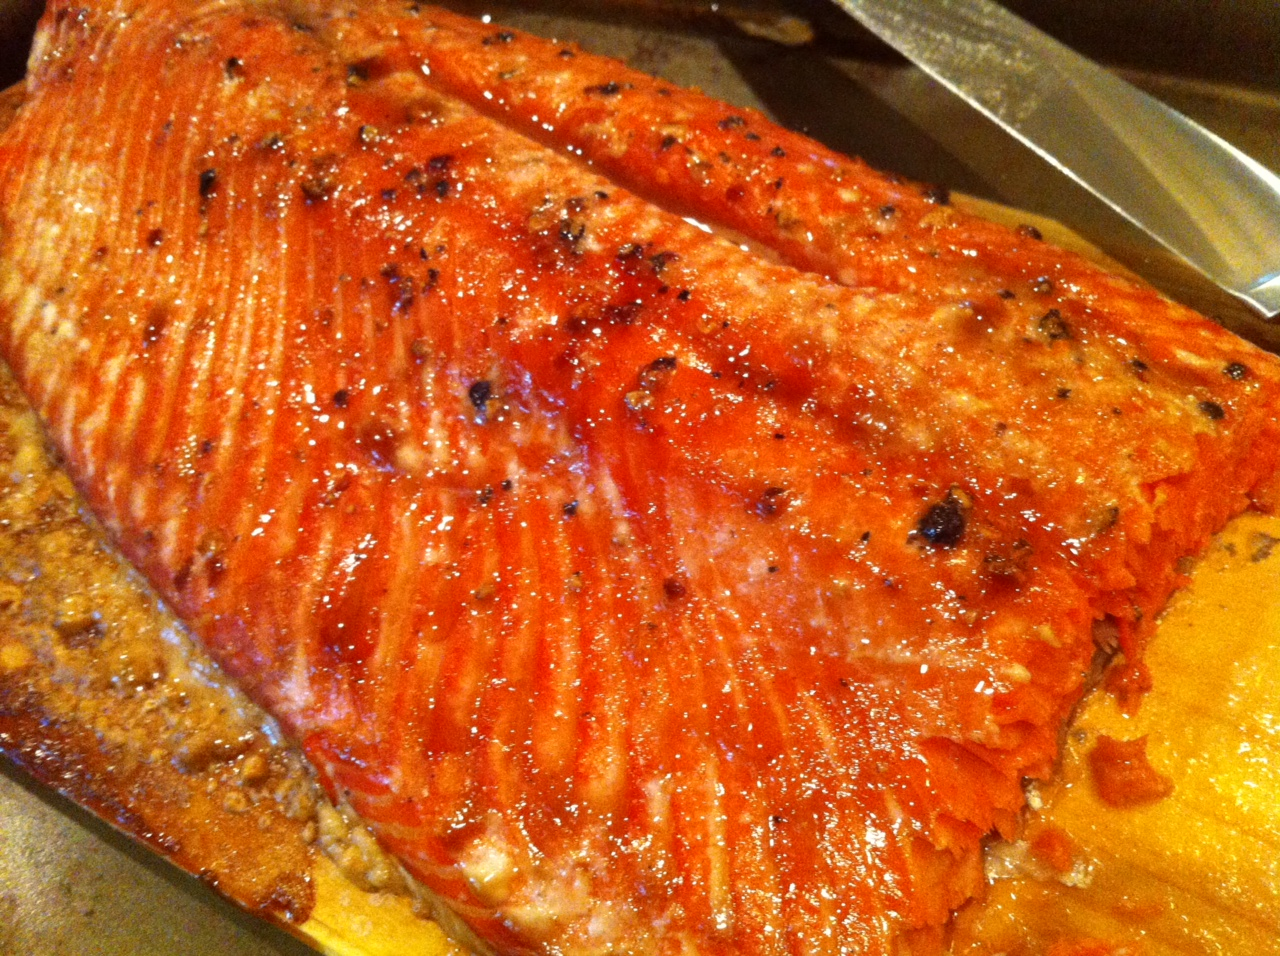 Smoked Wild Salmon on the Big Green Egg